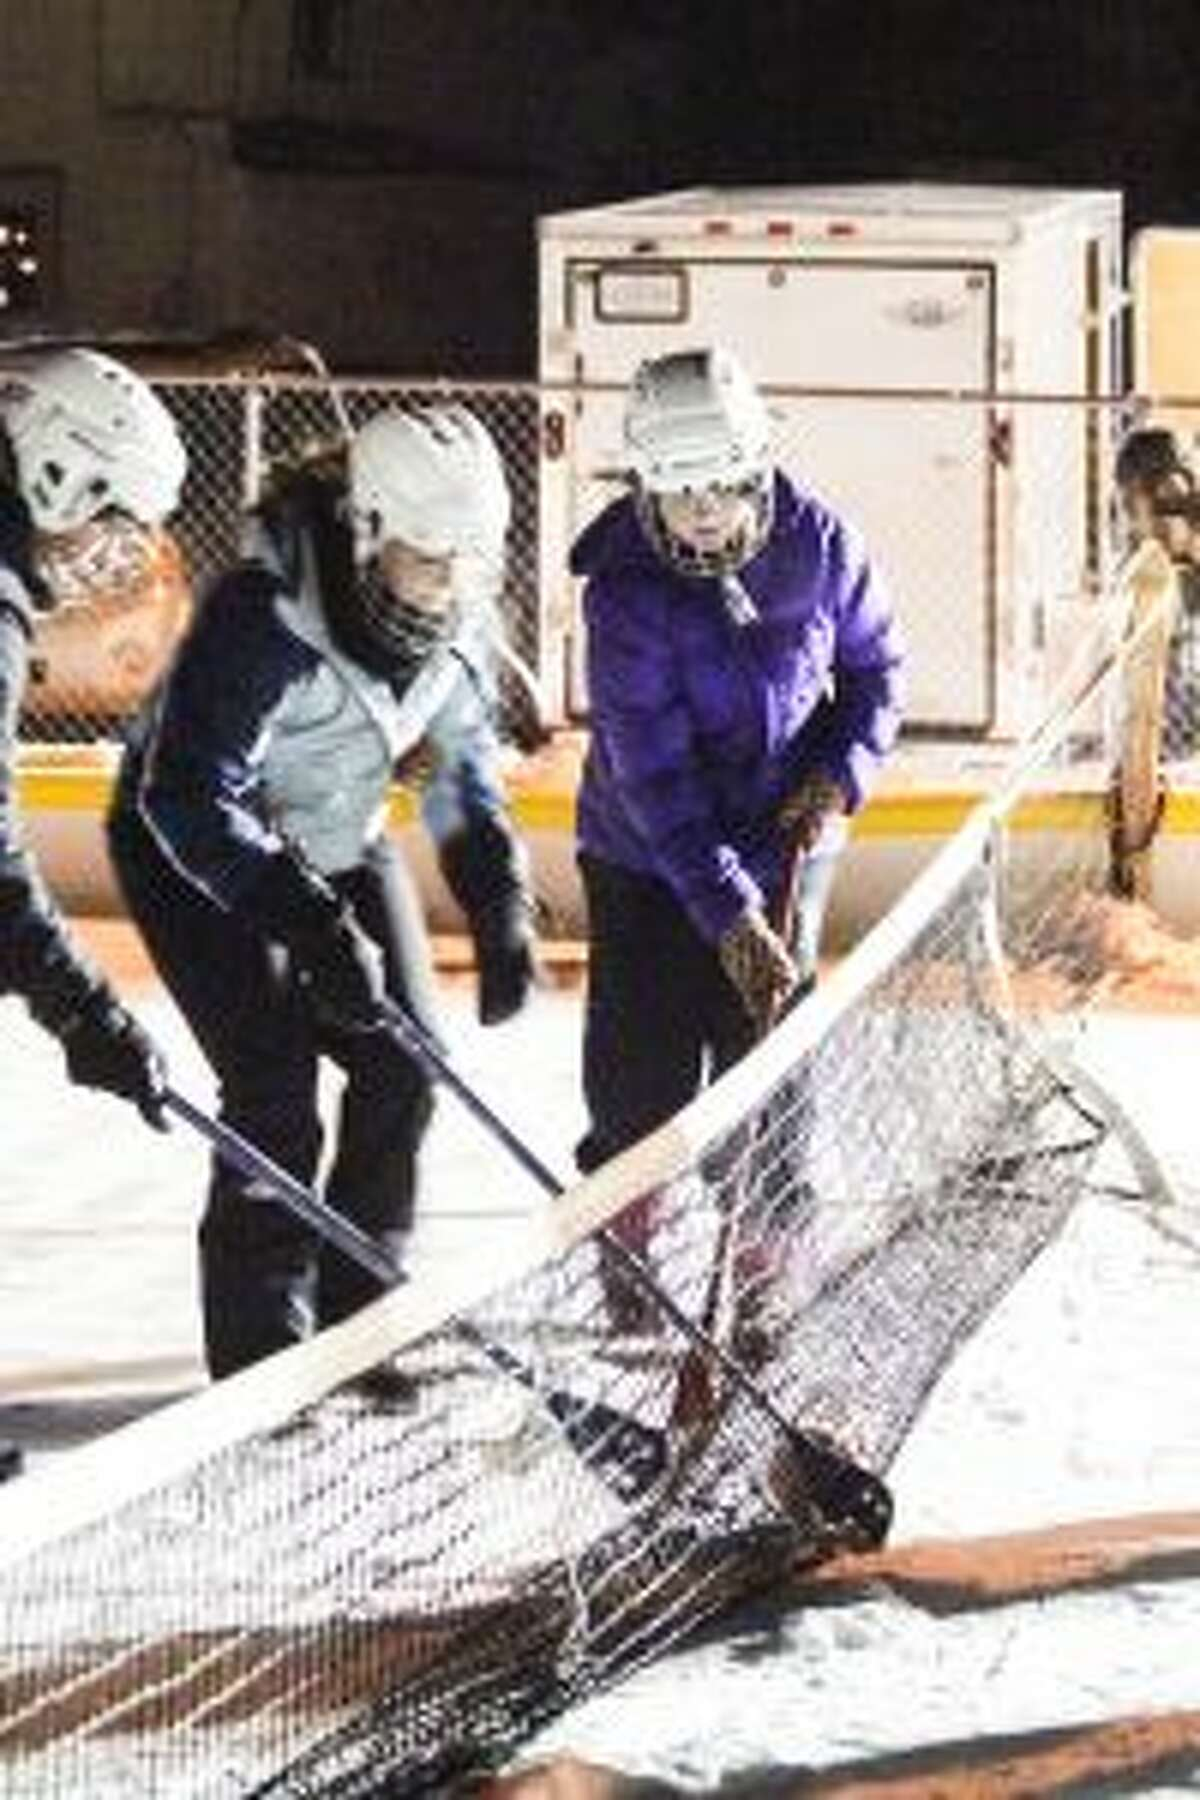 """GET THE BALL: Broomball players battle for the ball during Thursday night's tournament at the ice rink in Evart. The tournament kicked off the """"I Heart Evart"""" customer appreciation event from 15 members of the Evart Downtown Development Authority."""